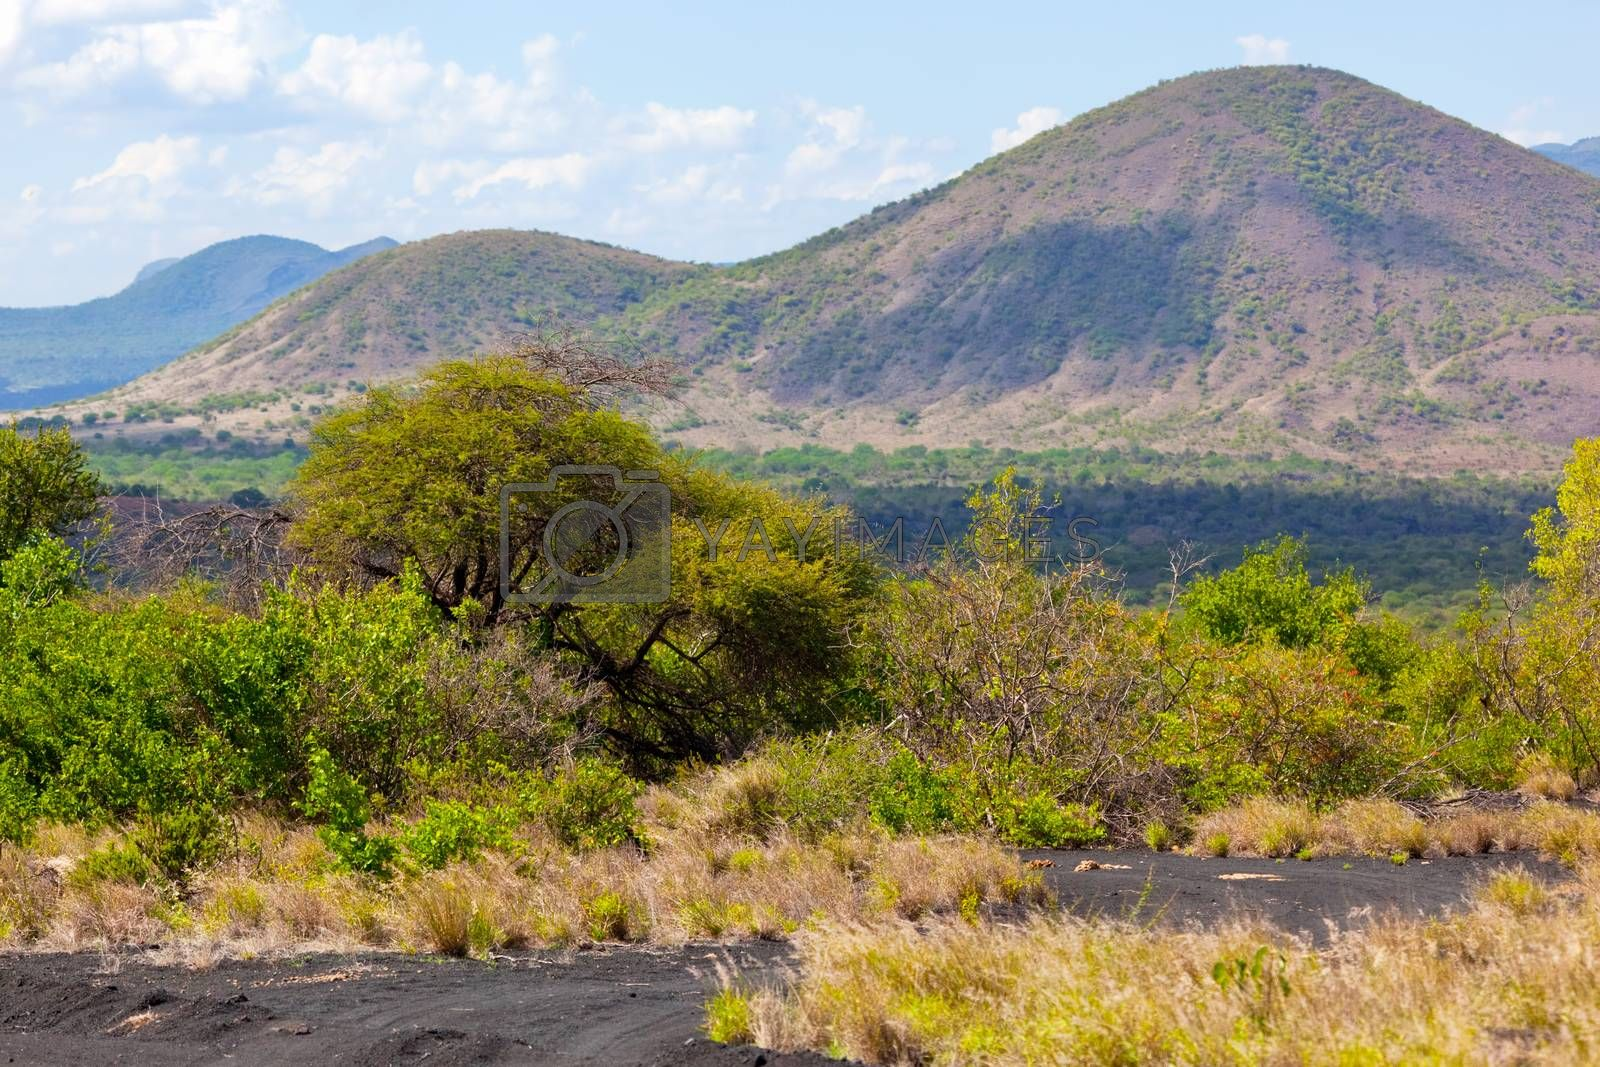 Royalty free image of Bush and savanna landscape in Africa Tsavo West, Kenya, Africa by photocreo